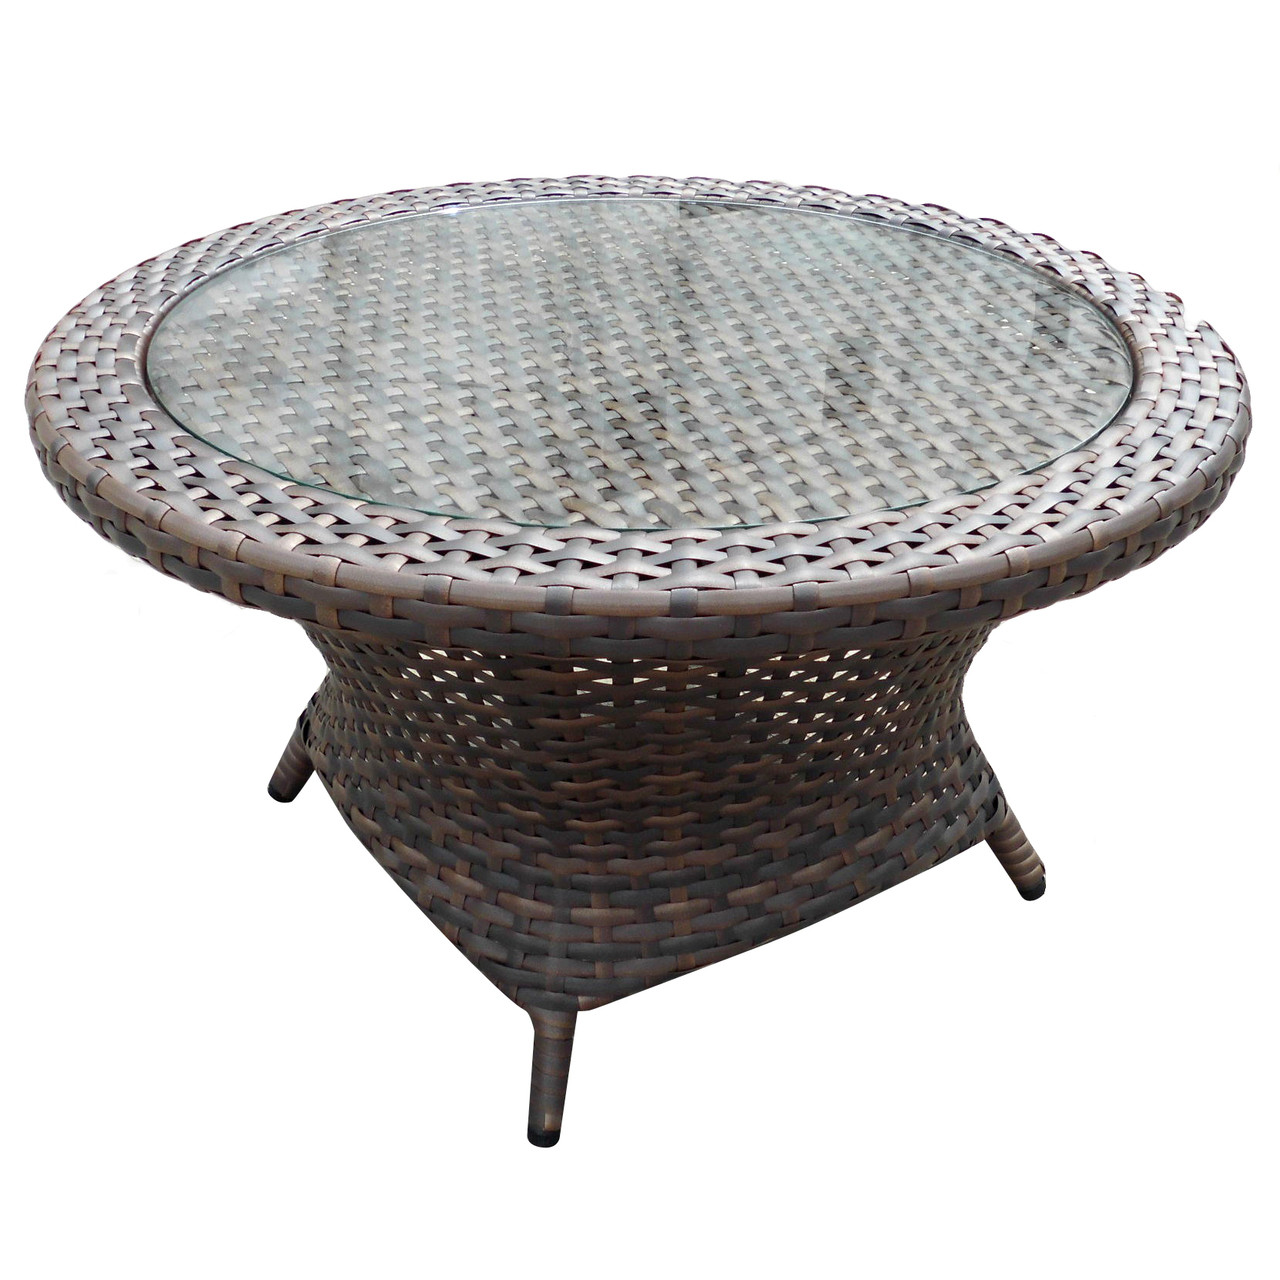 - Forever Patio Horizon Wicker Round Coffee Table By NorthCape